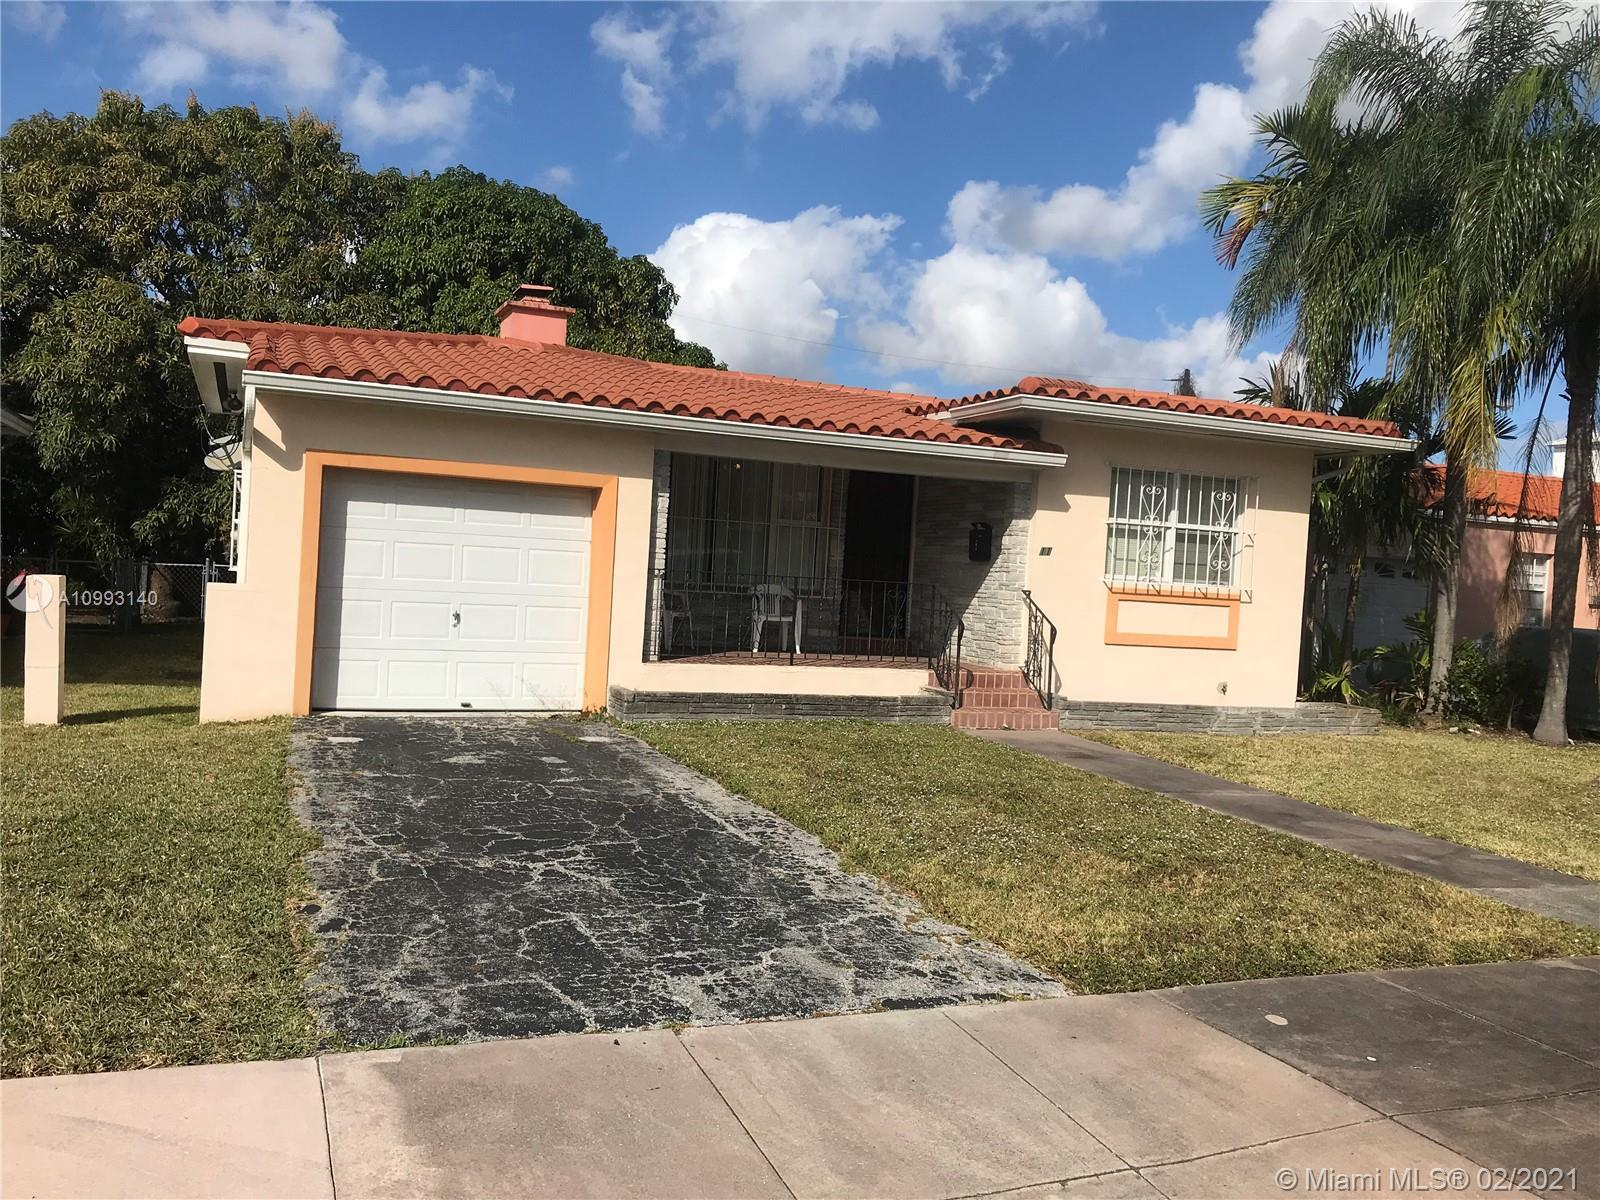 Up for sale is a 2 bedroom 2 bathroom single family home with a garage in the heart of Coral Gables